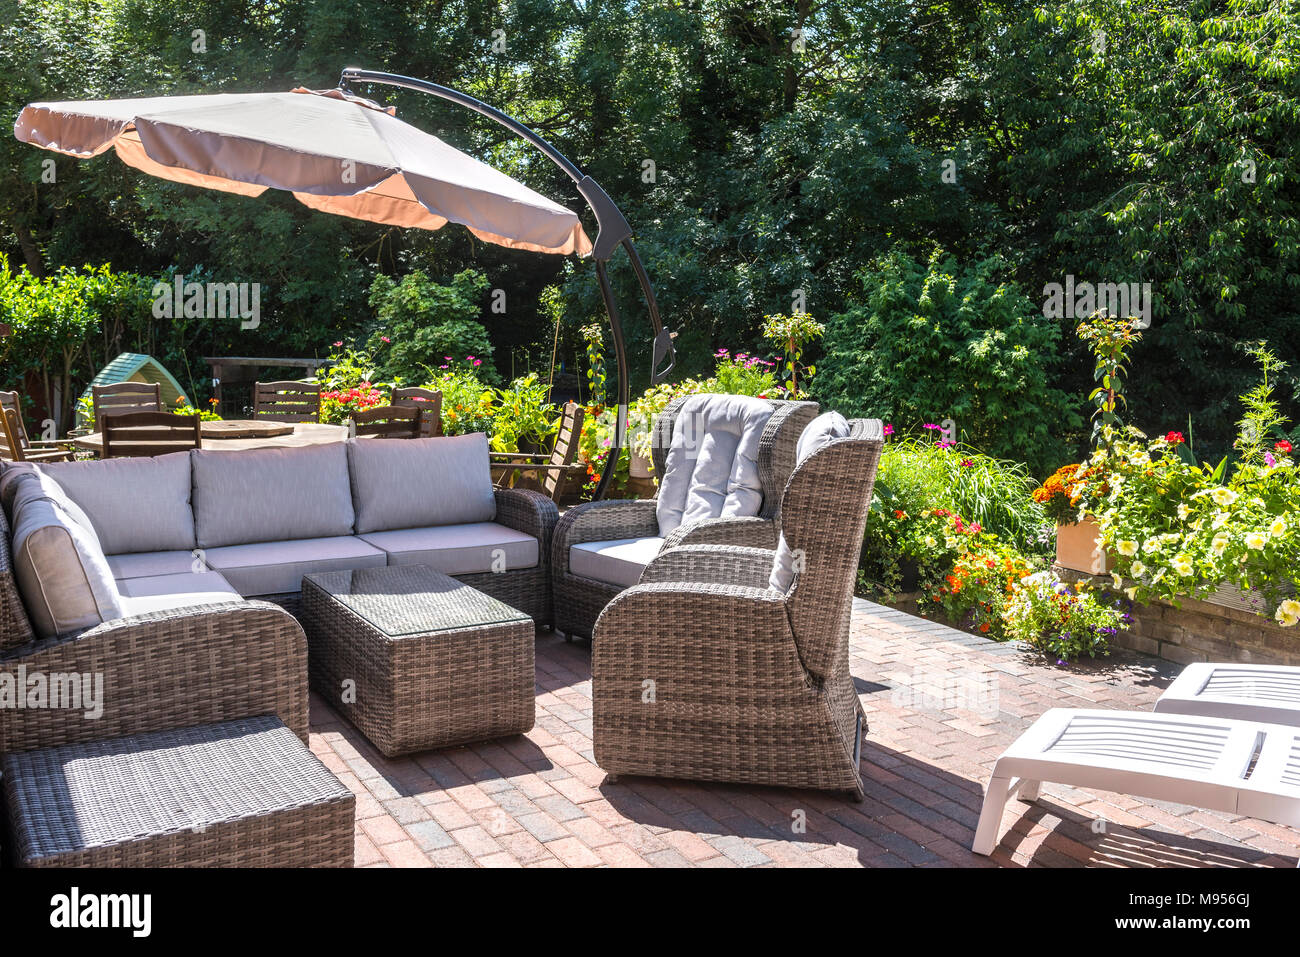 https www alamy com modern rattan patio furniture with dining table and chairs with parasol in the background all surrounded by greenery and flowers image177750514 html